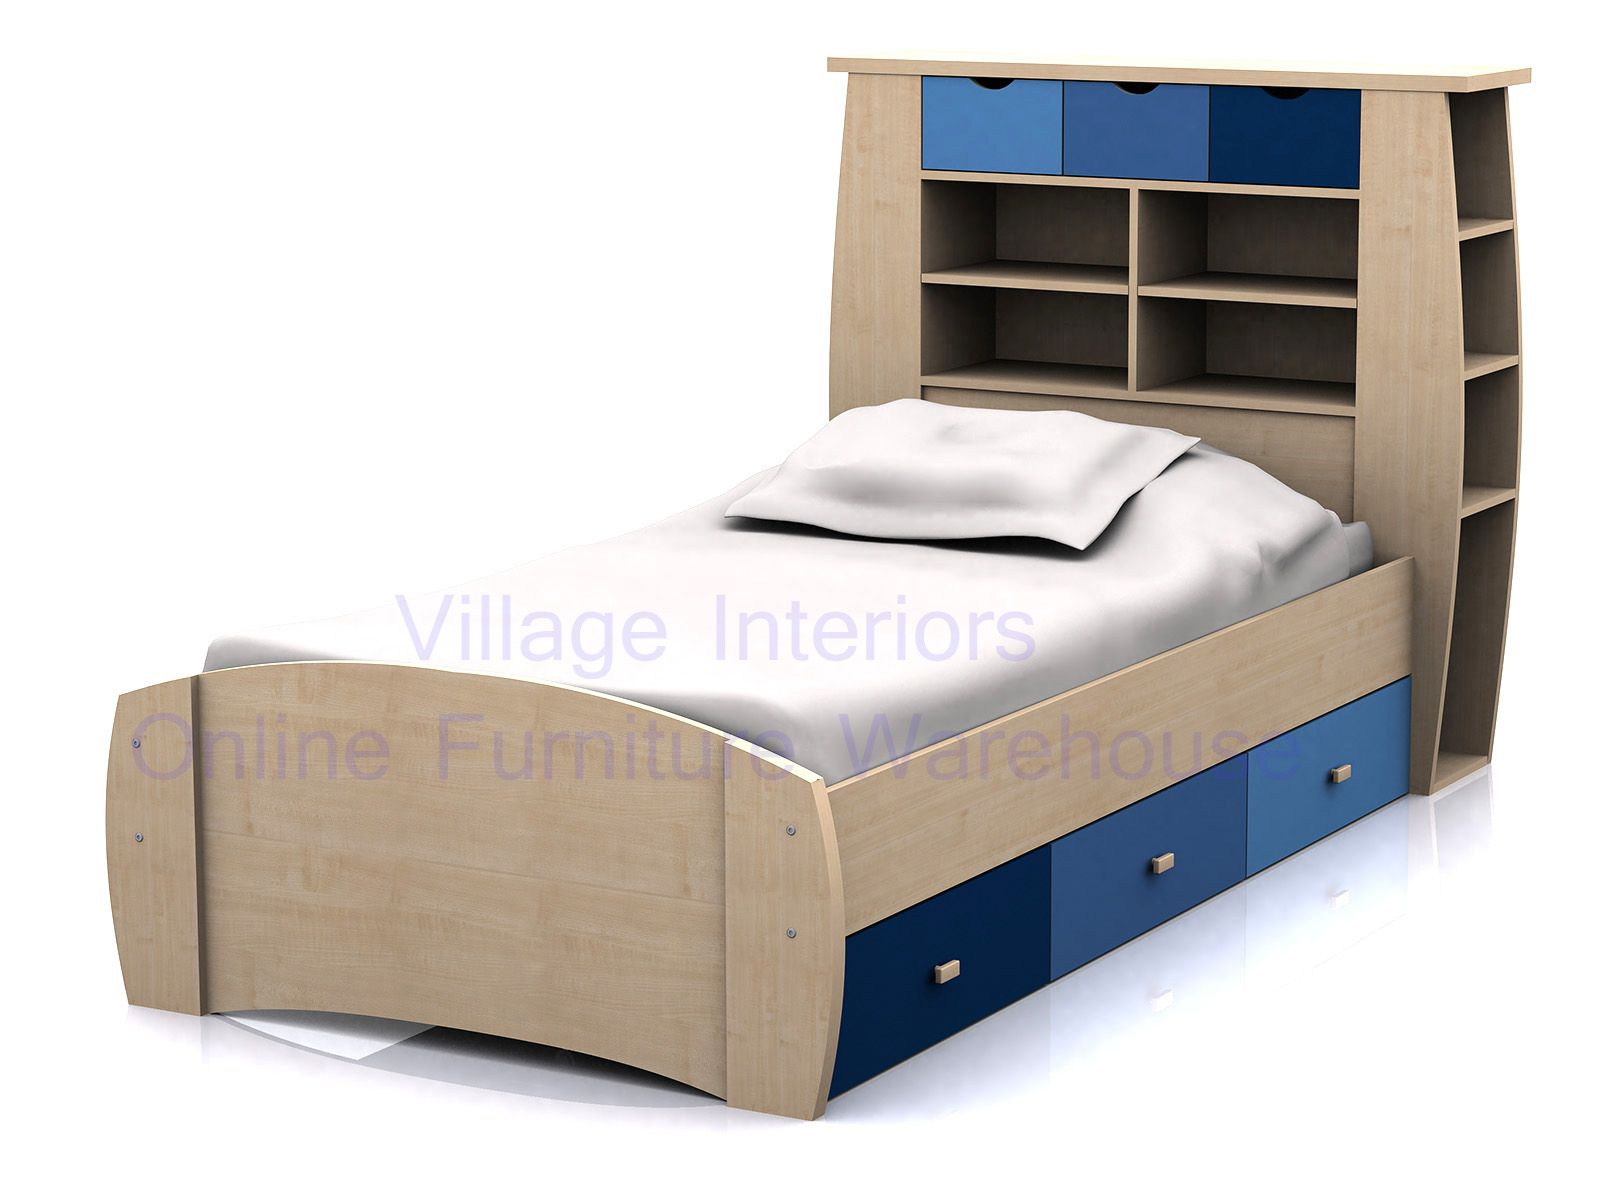 Single Bed With Storage Part - 22: Image Result For Single Bed Frames With Storage